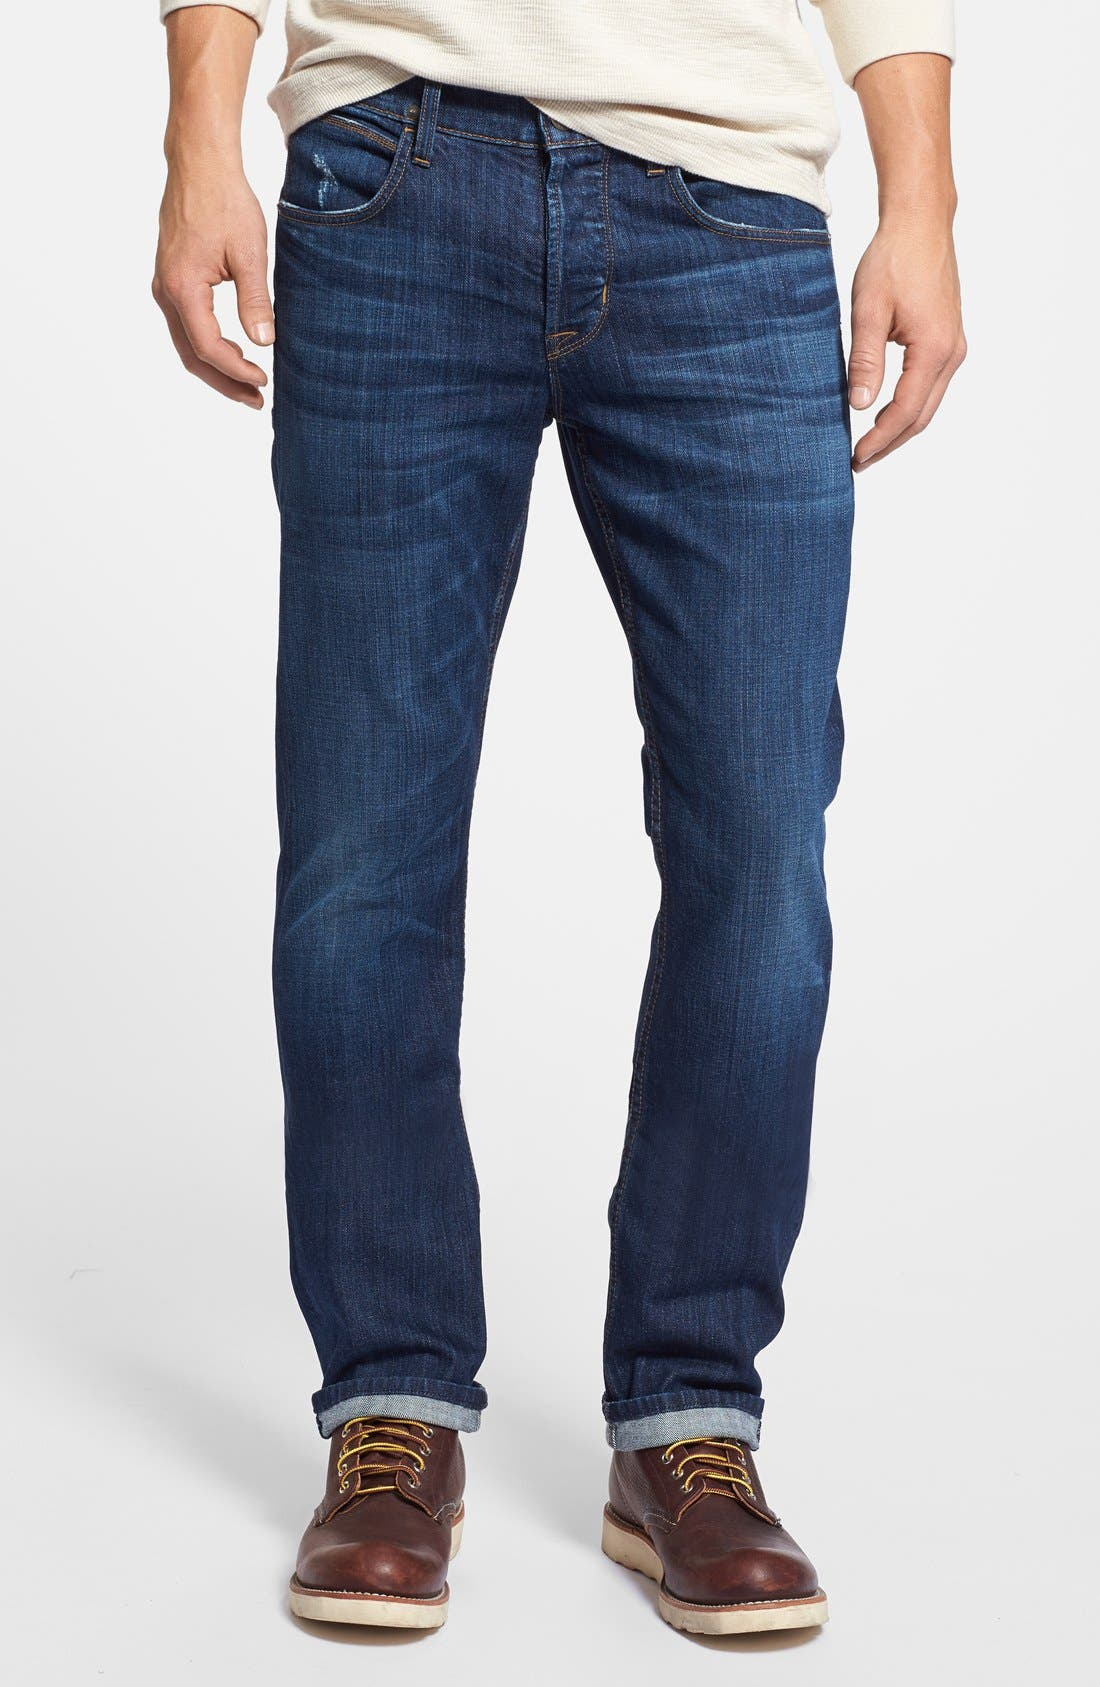 Alternate Image 1 Selected - Hudson Jeans 'Byron' Slim Straight Leg Jeans (Blueprint)